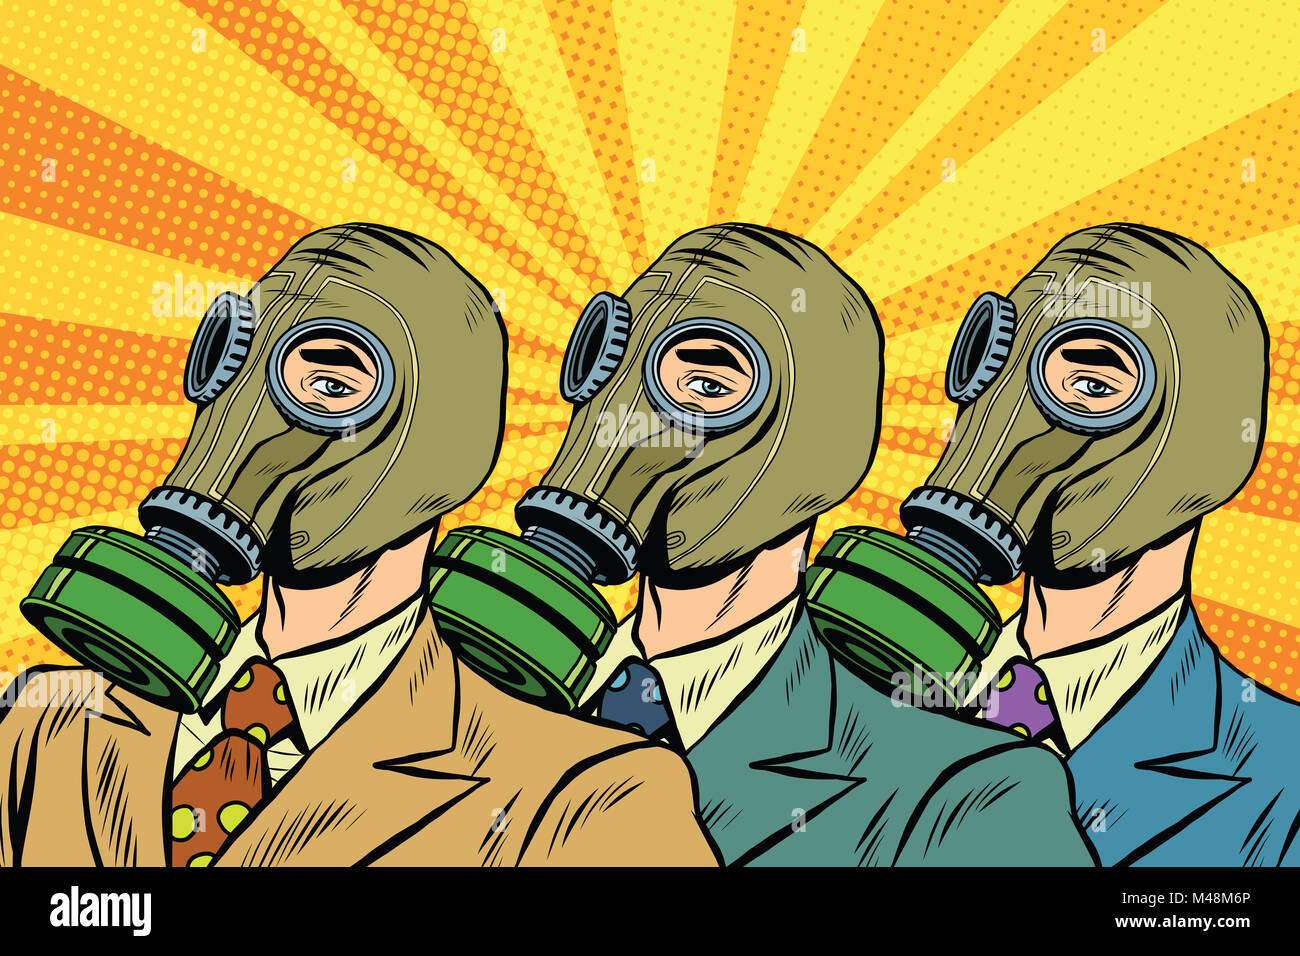 People in gas masks the Sots art style - Stock Image